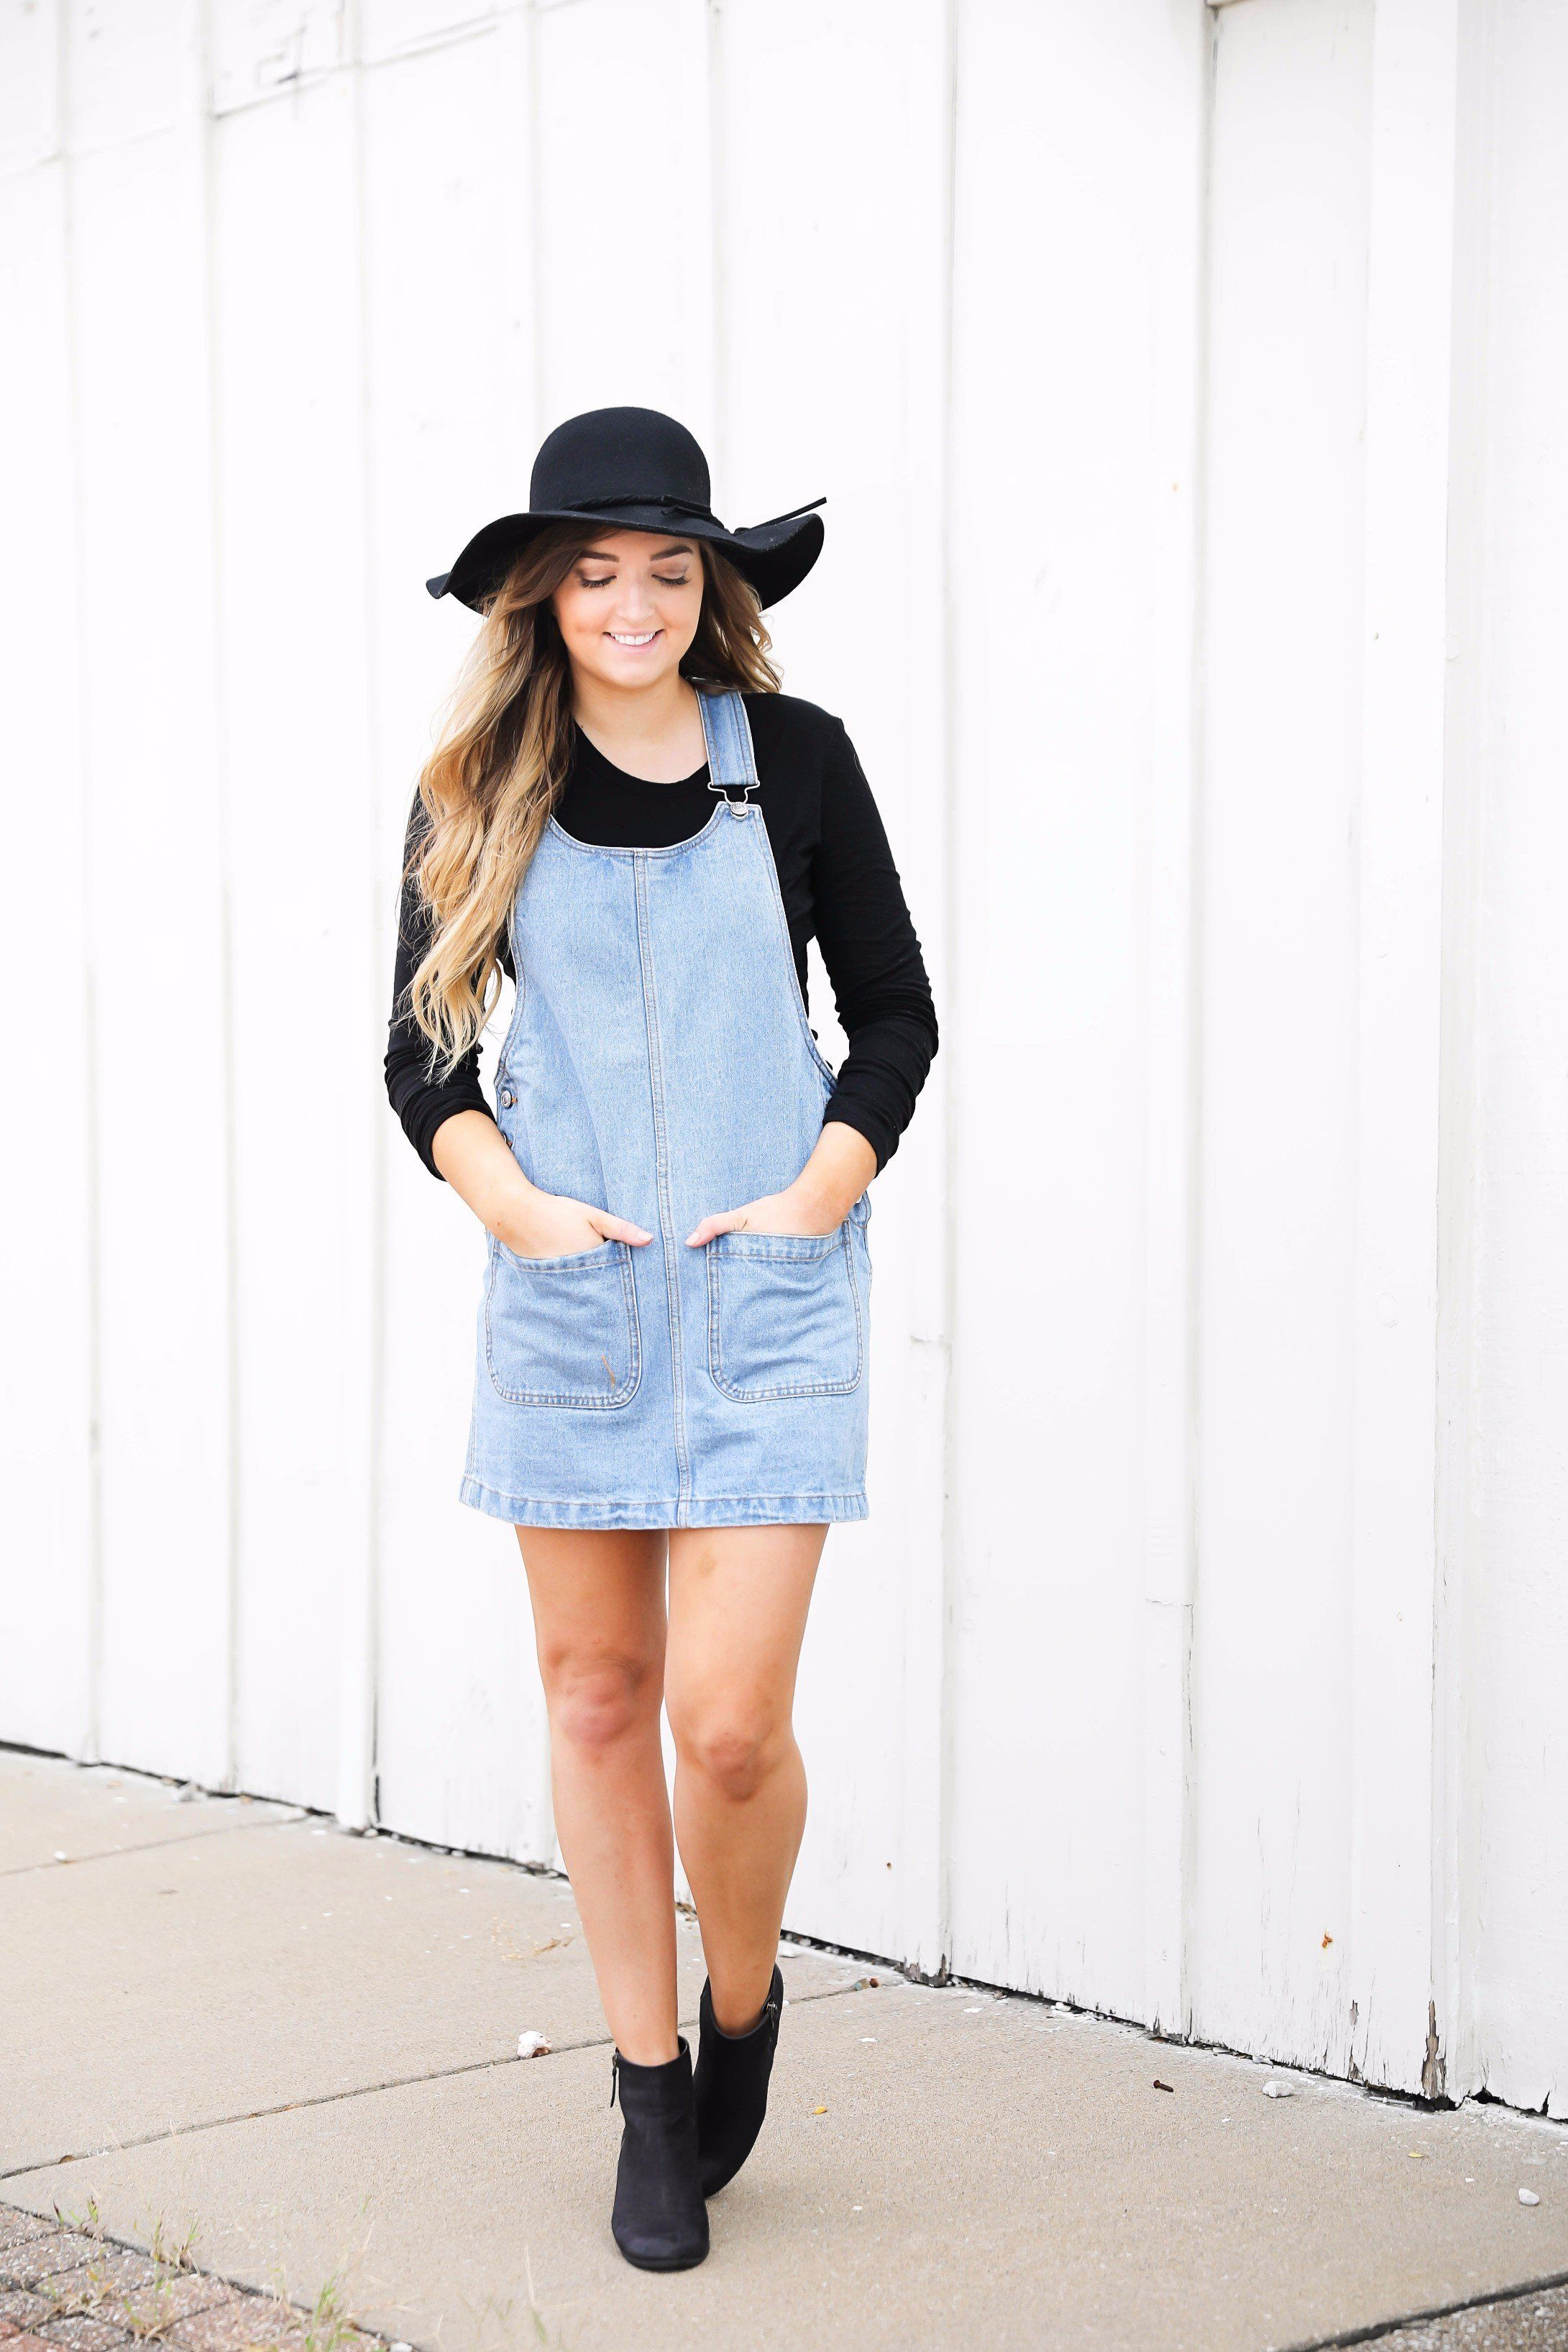 Fall outfit idea! Overall dress and black floppy hat and black booties! I  love